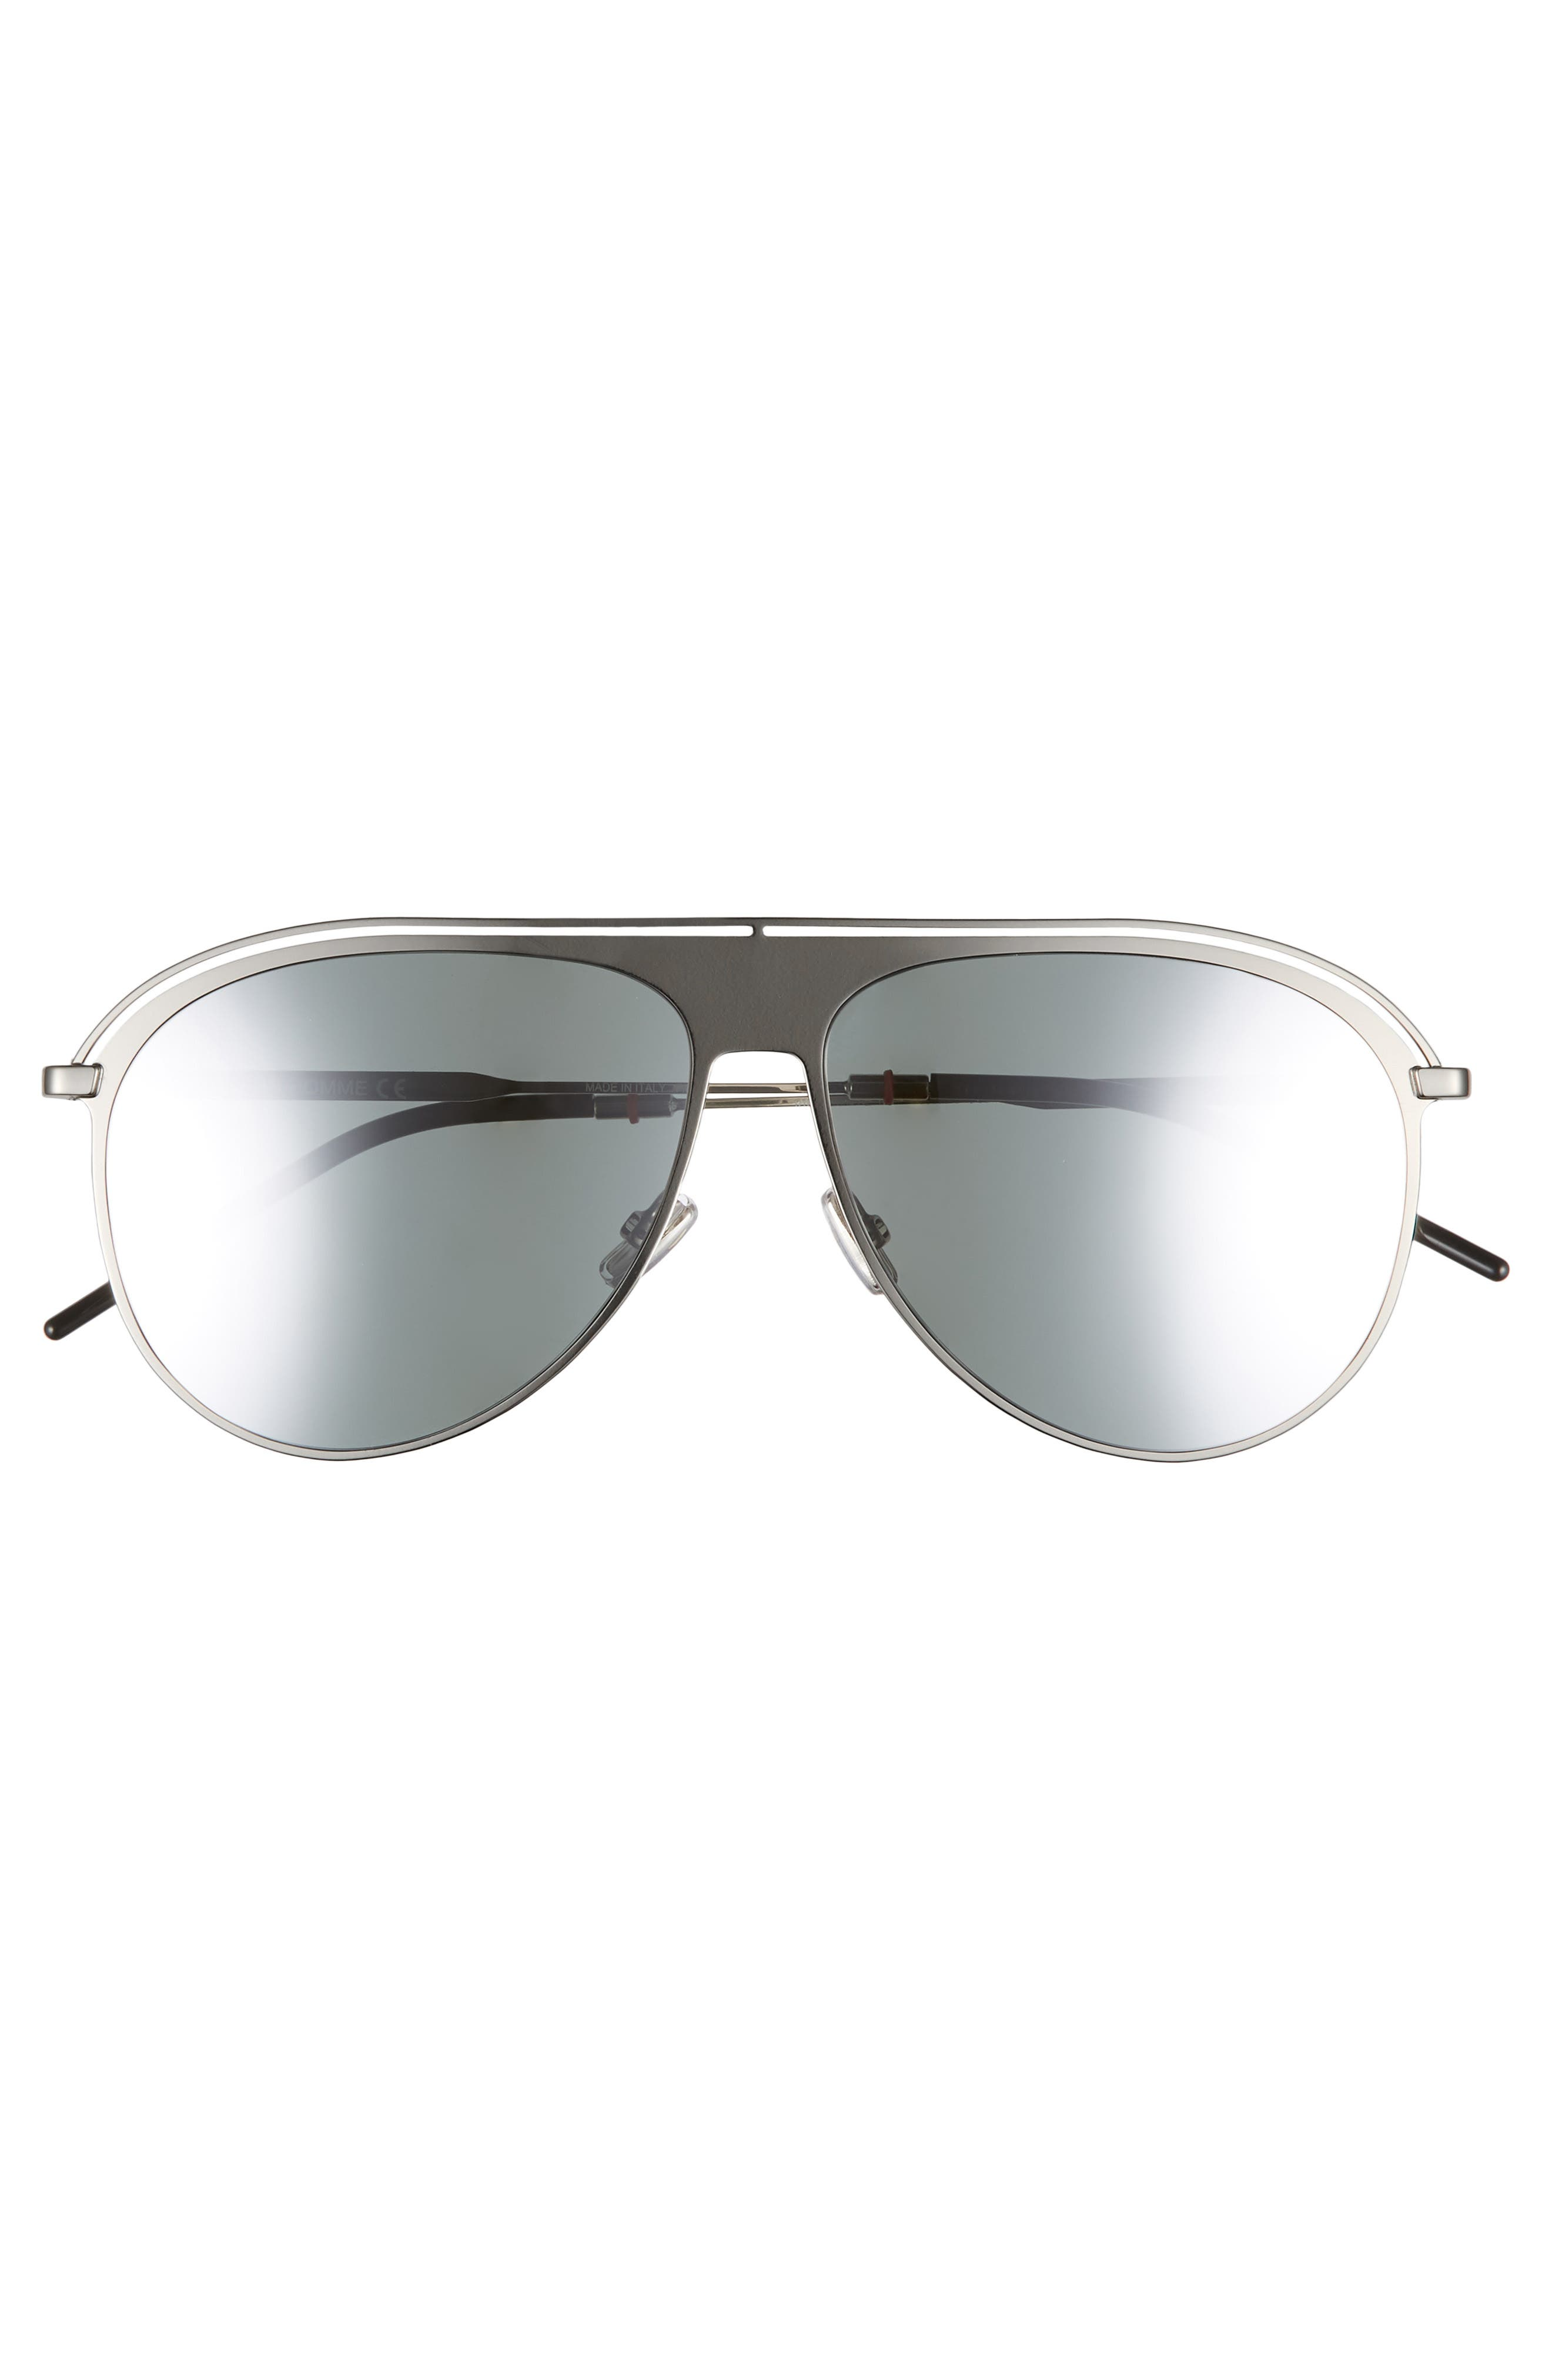 DIOR,                             59mm Polarized Aviator Sunglasses,                             Alternate thumbnail 2, color,                             PALLADIUM/ POLAR